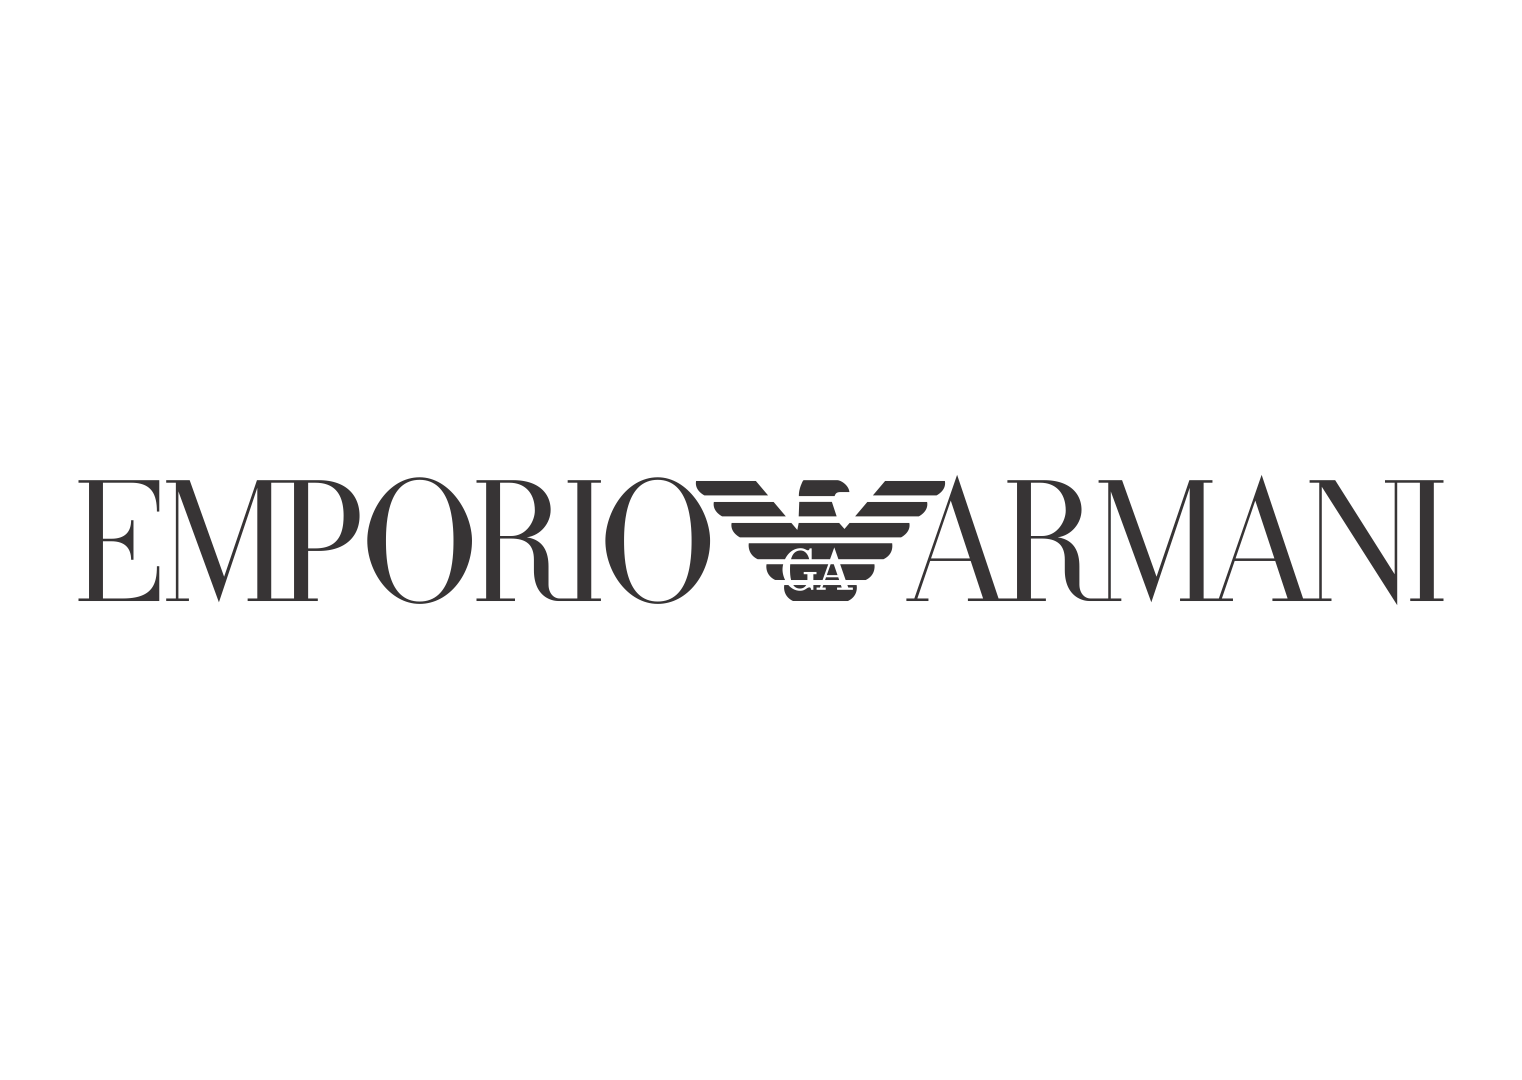 Emporio Armani Logo Vector Wallpaper